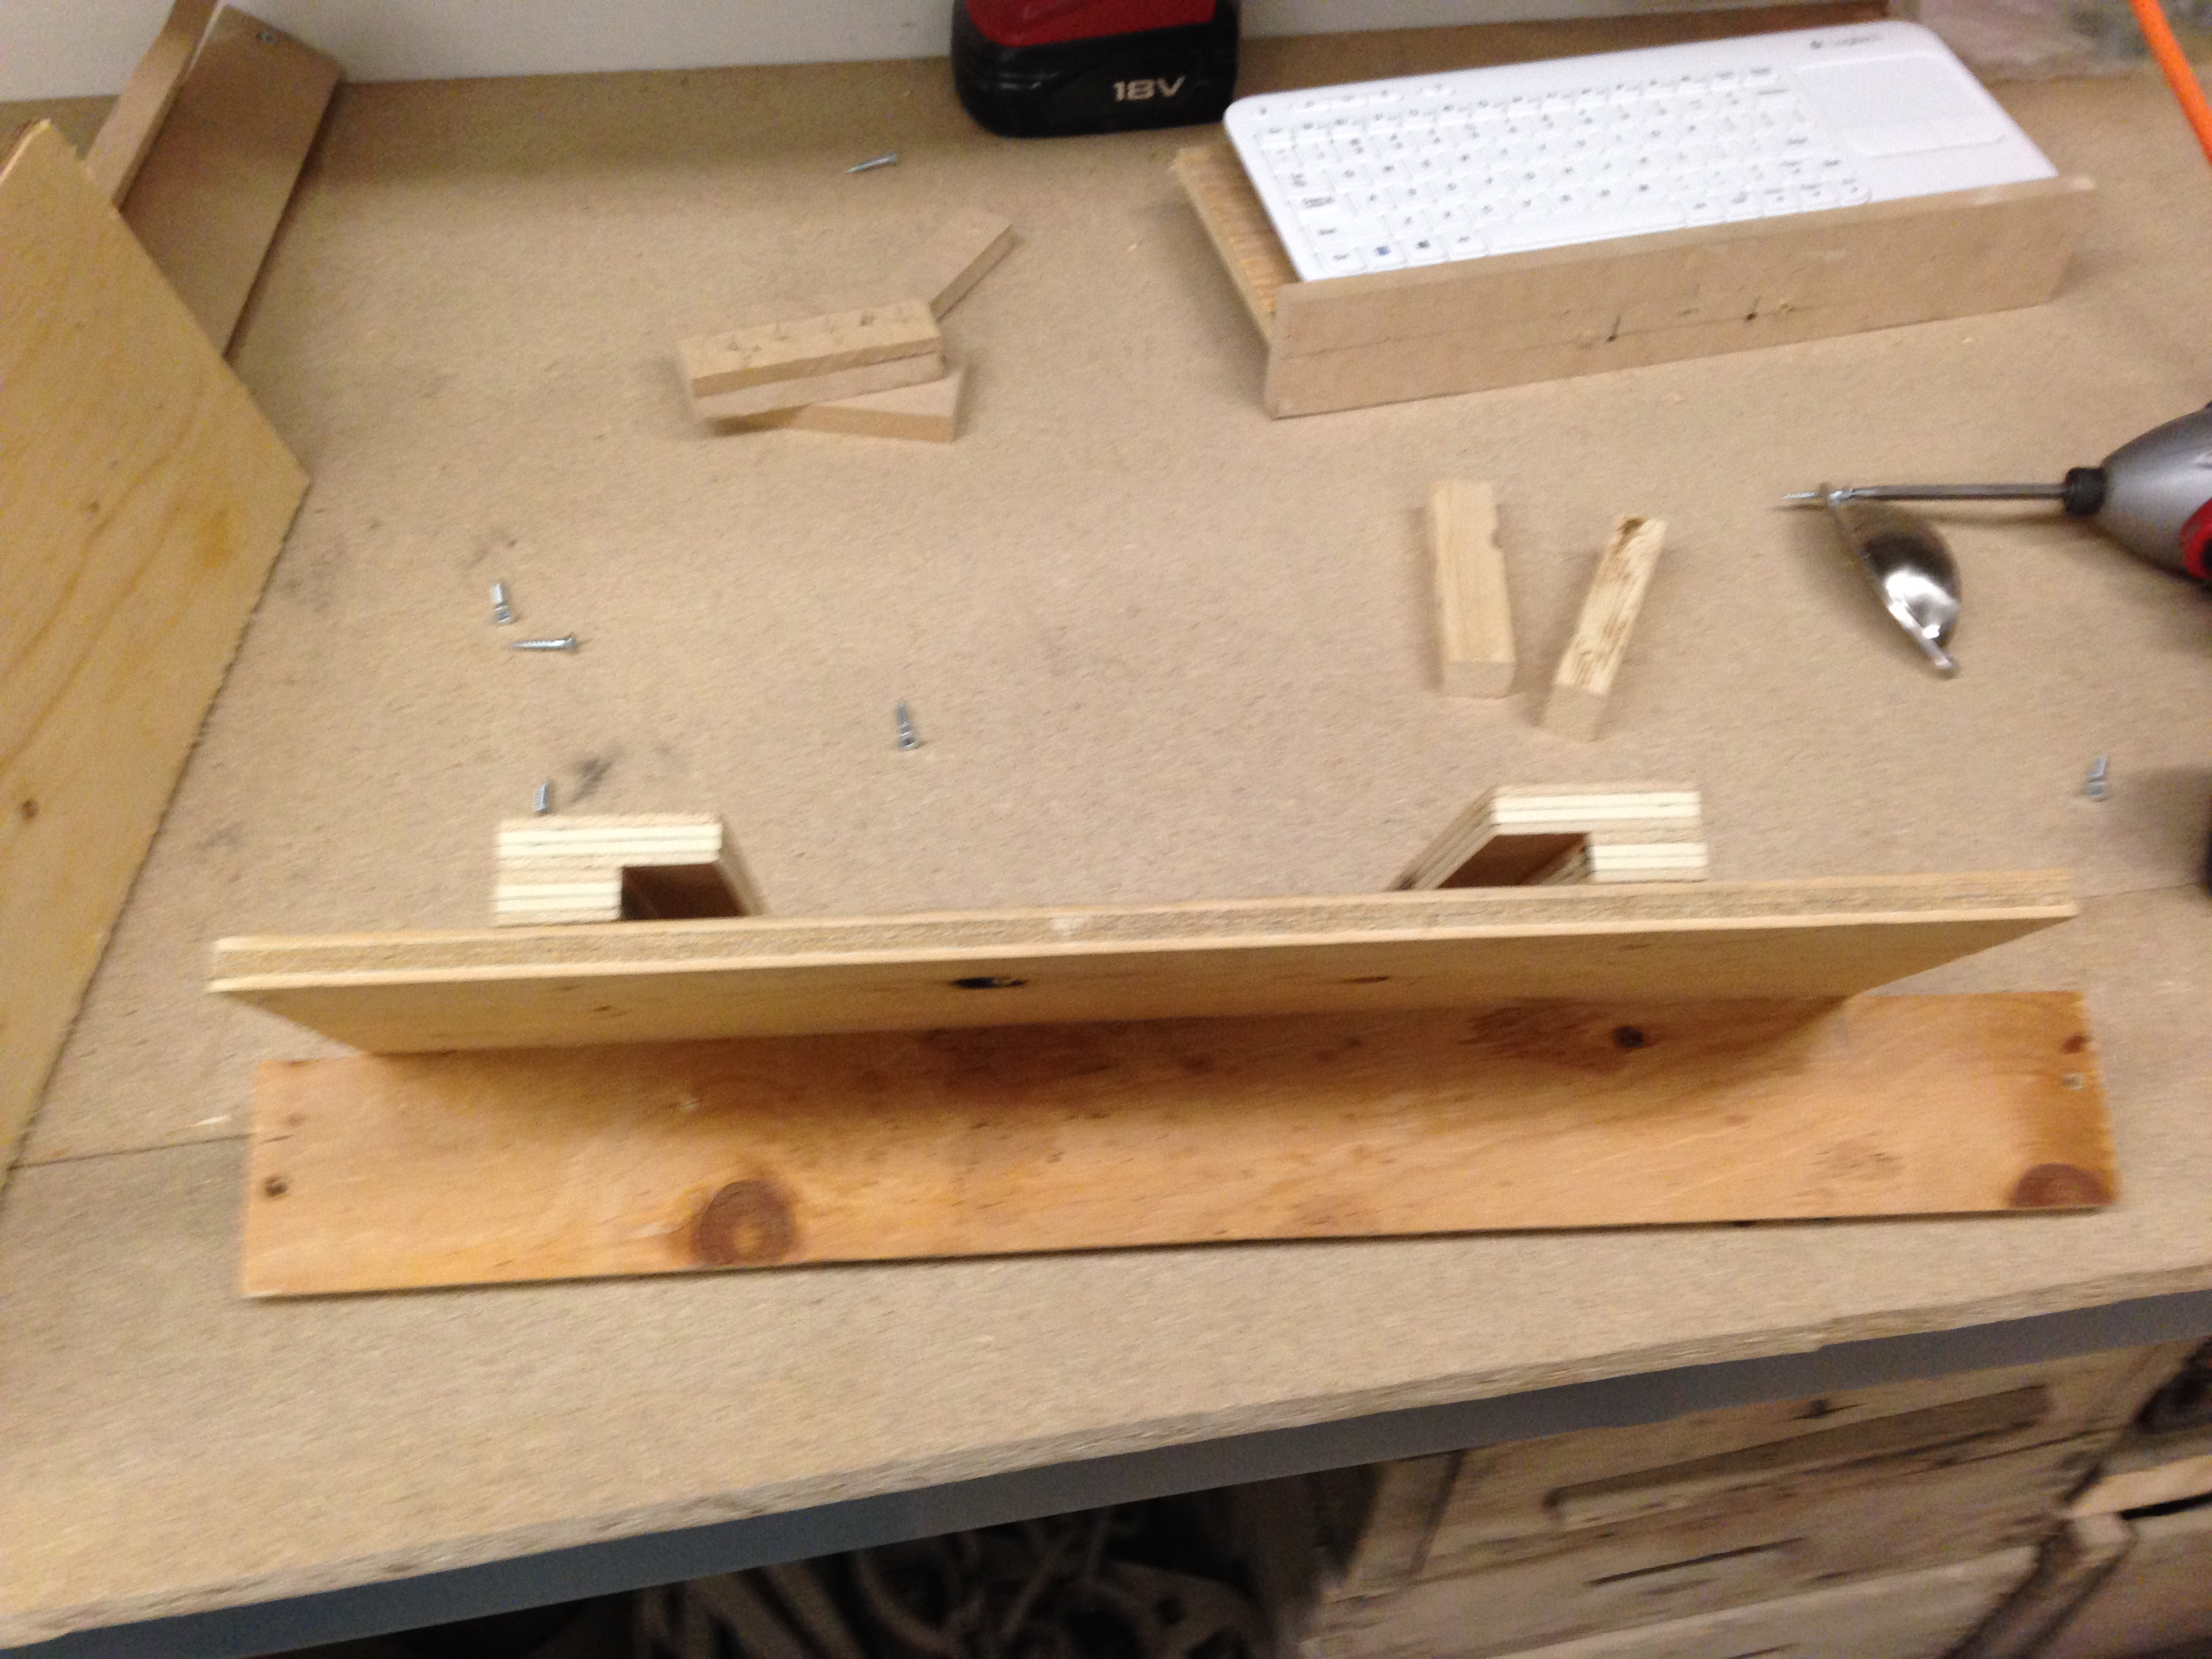 Picture of Mounting Monitor and Keyboard Drawer